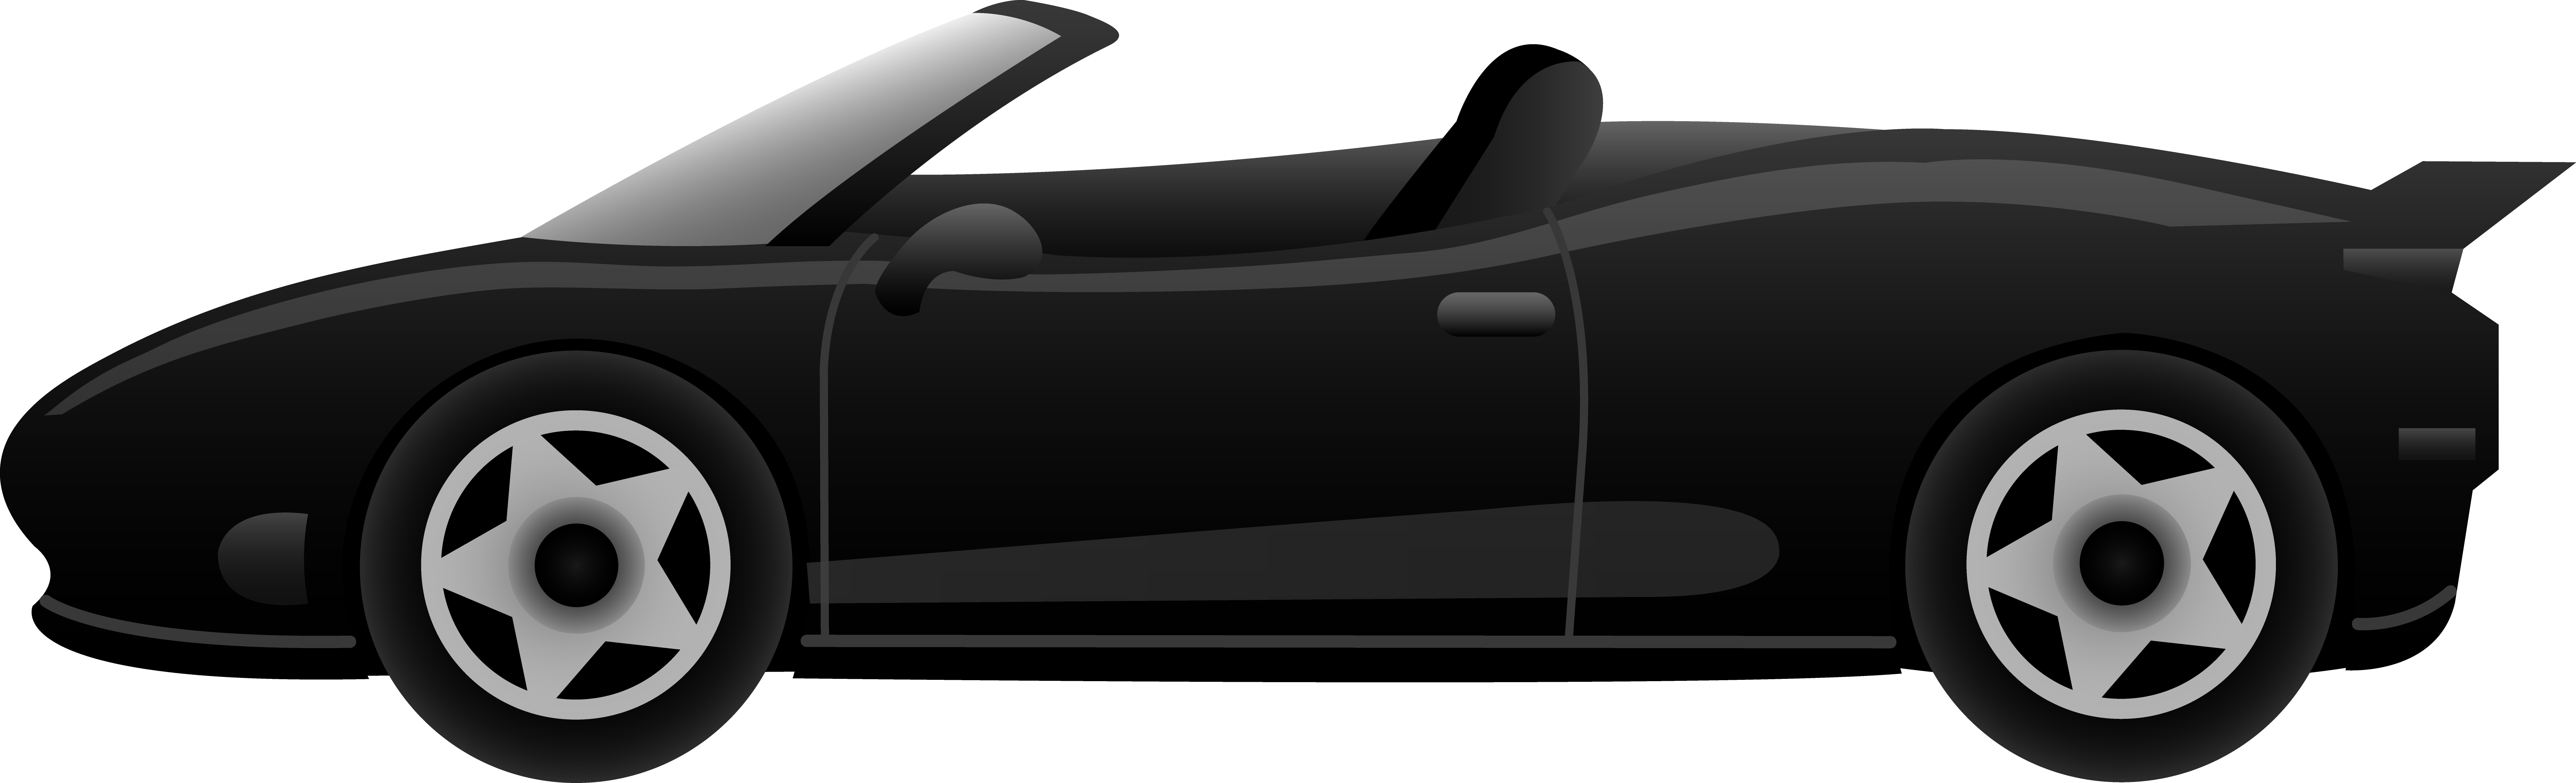 7863x2391 Fast Car Clipart Free Images